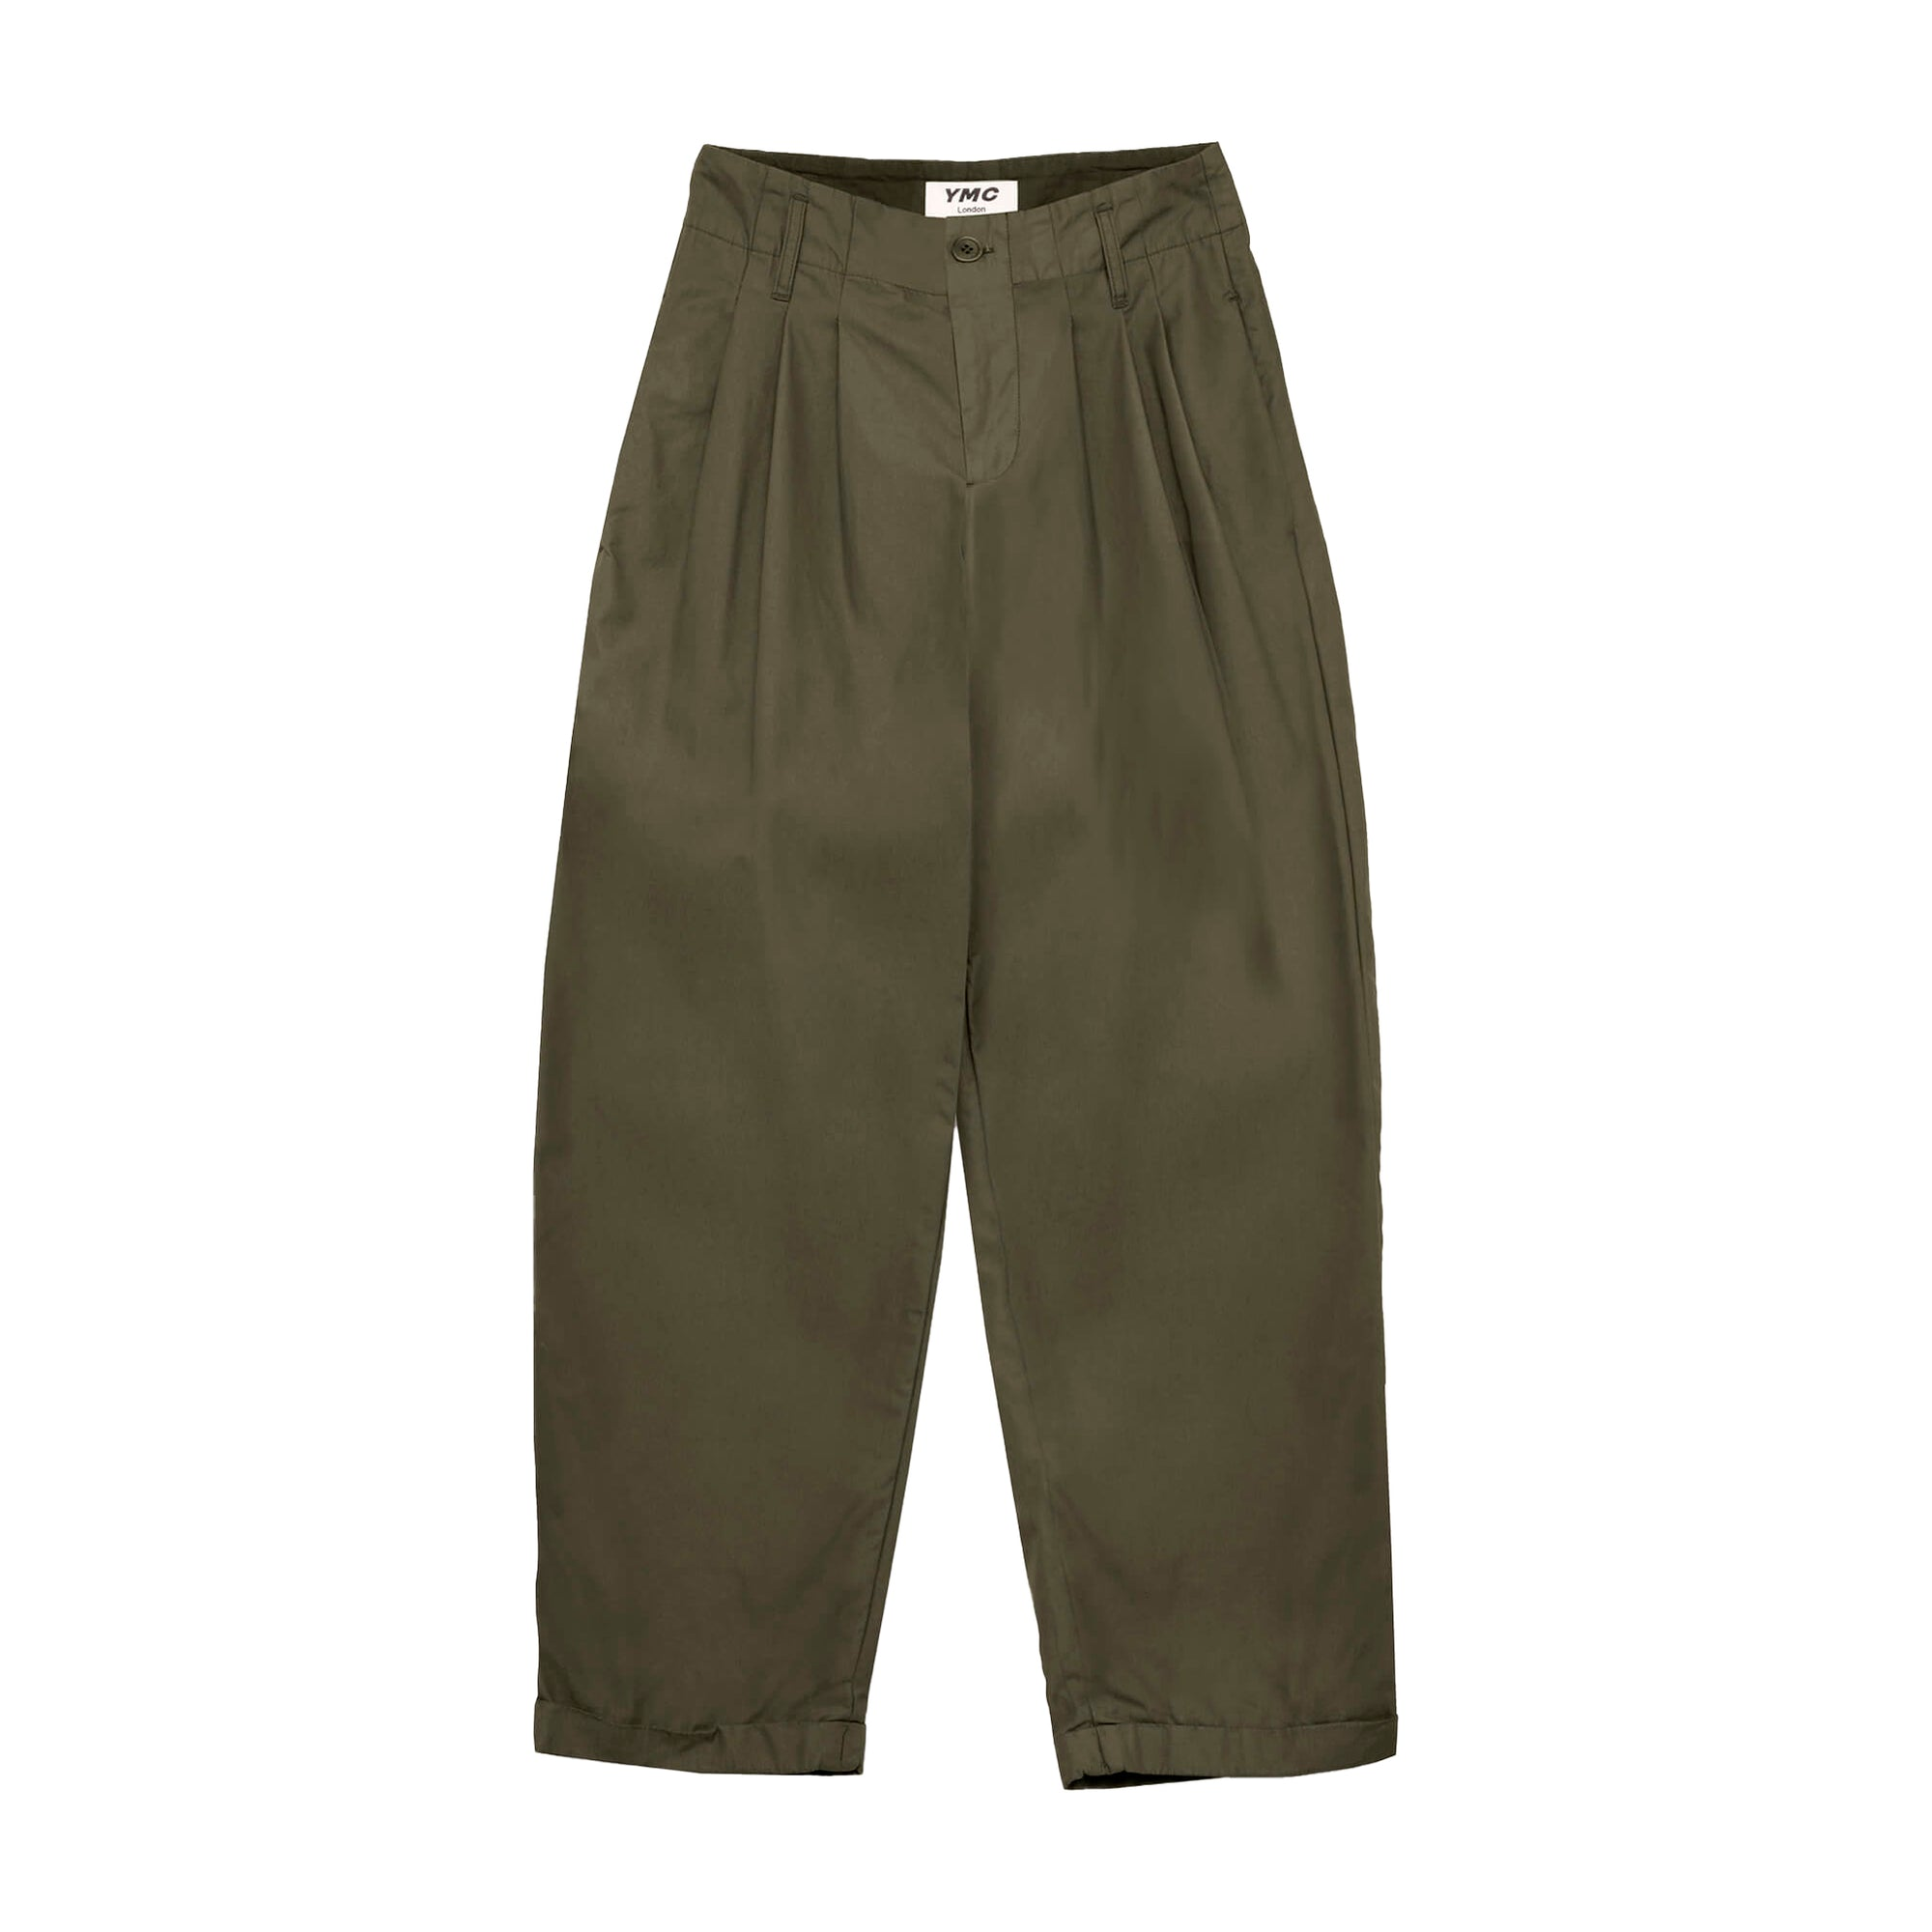 YMC Womens Keaton Trousers: Olive - The Union Project